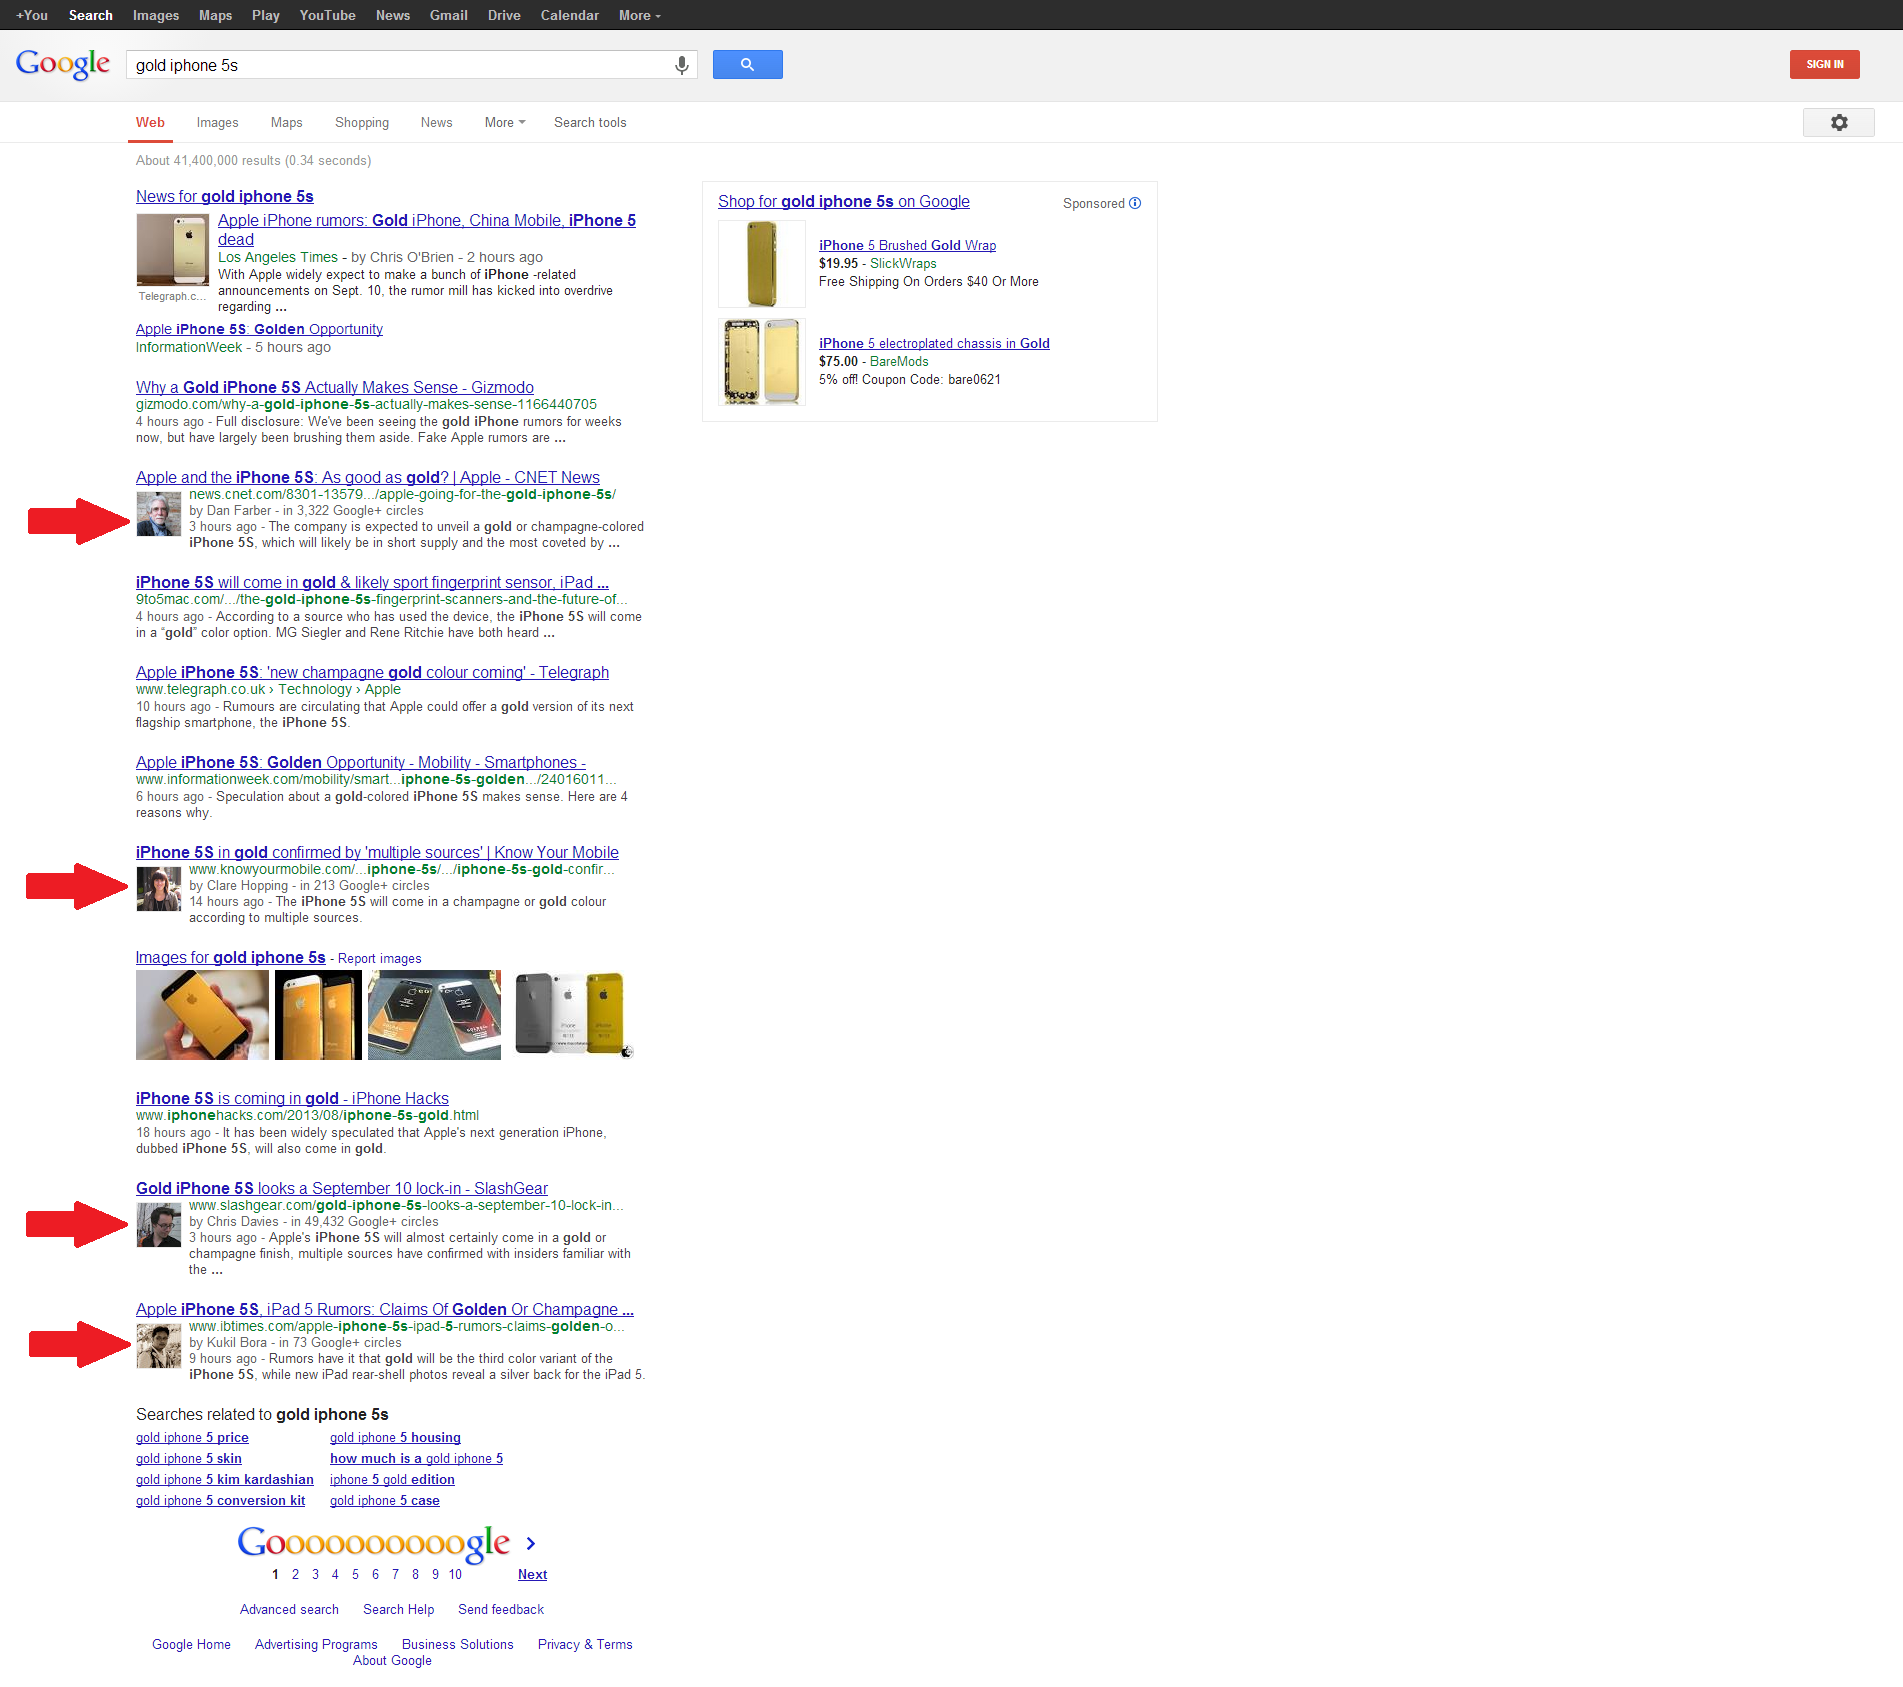 Gold iPhone 5S Google Results